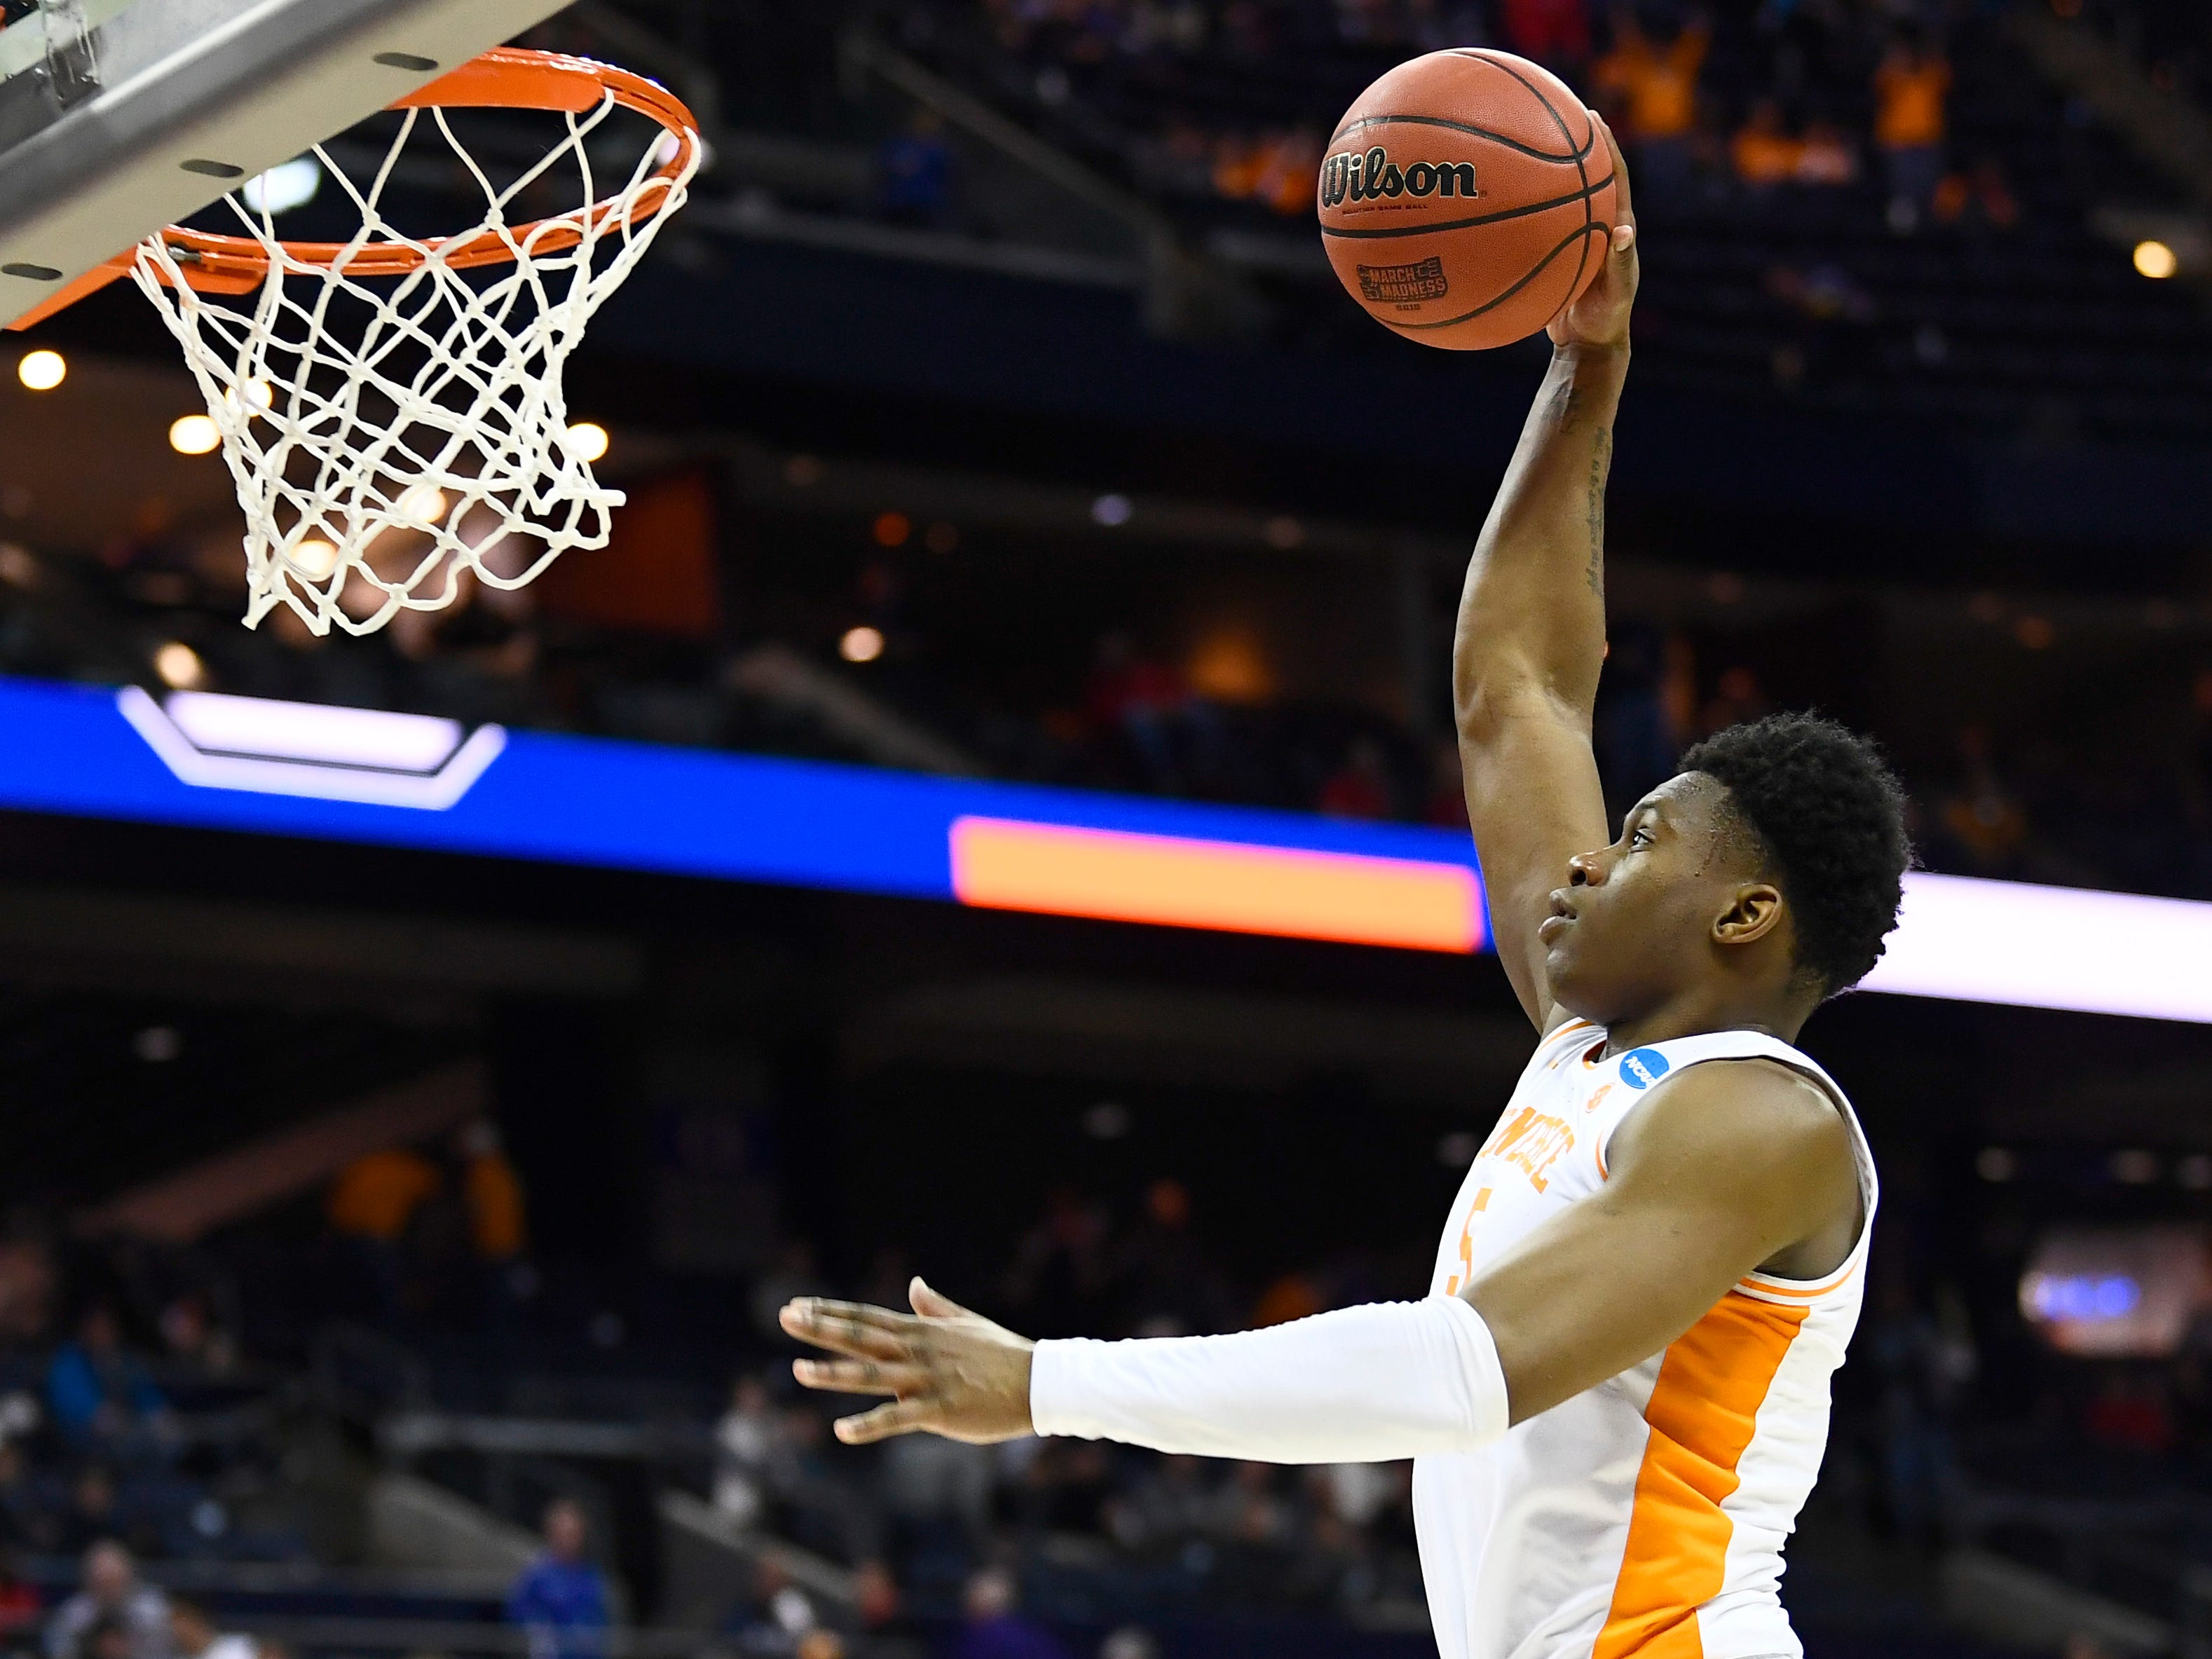 Tennessee guard Admiral Schofield (5) goes in for a dunk against Colgate in the first round of the NCAA Tournament at Nationwide Arena in Columbus, Ohio, on Friday, March 22, 2019.